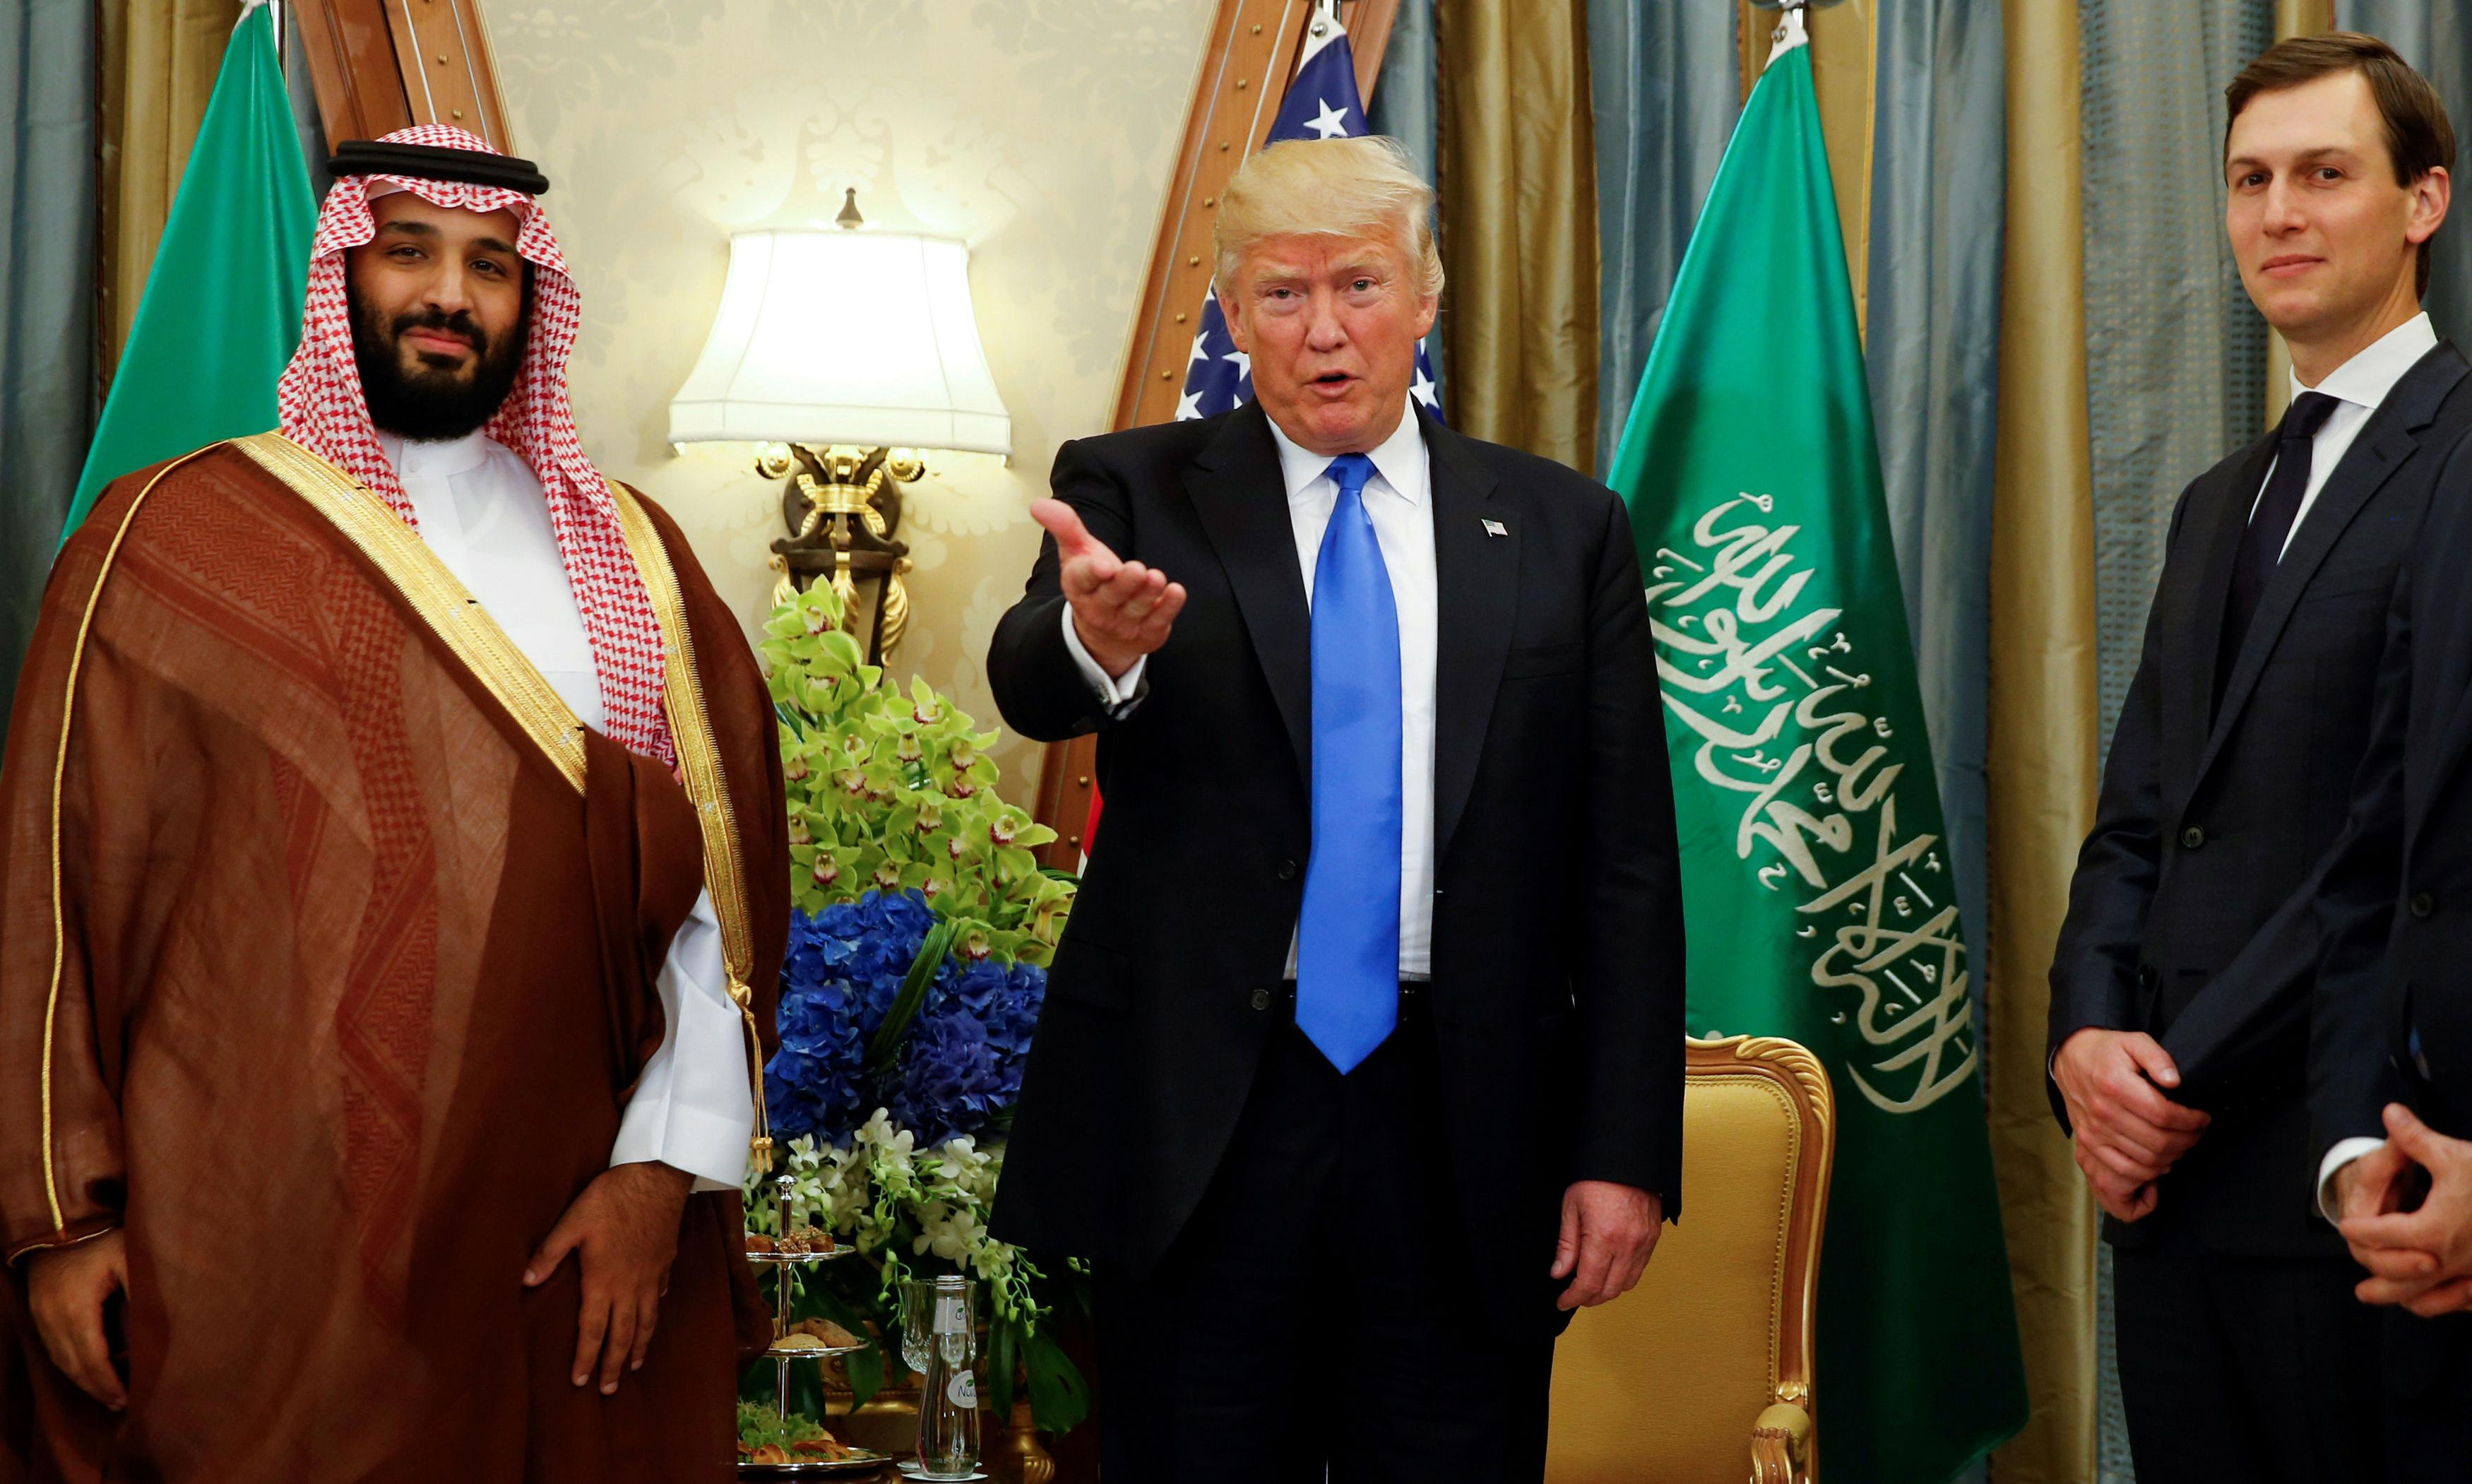 House investigates 'White House plan' to share nuclear technology with Saudis